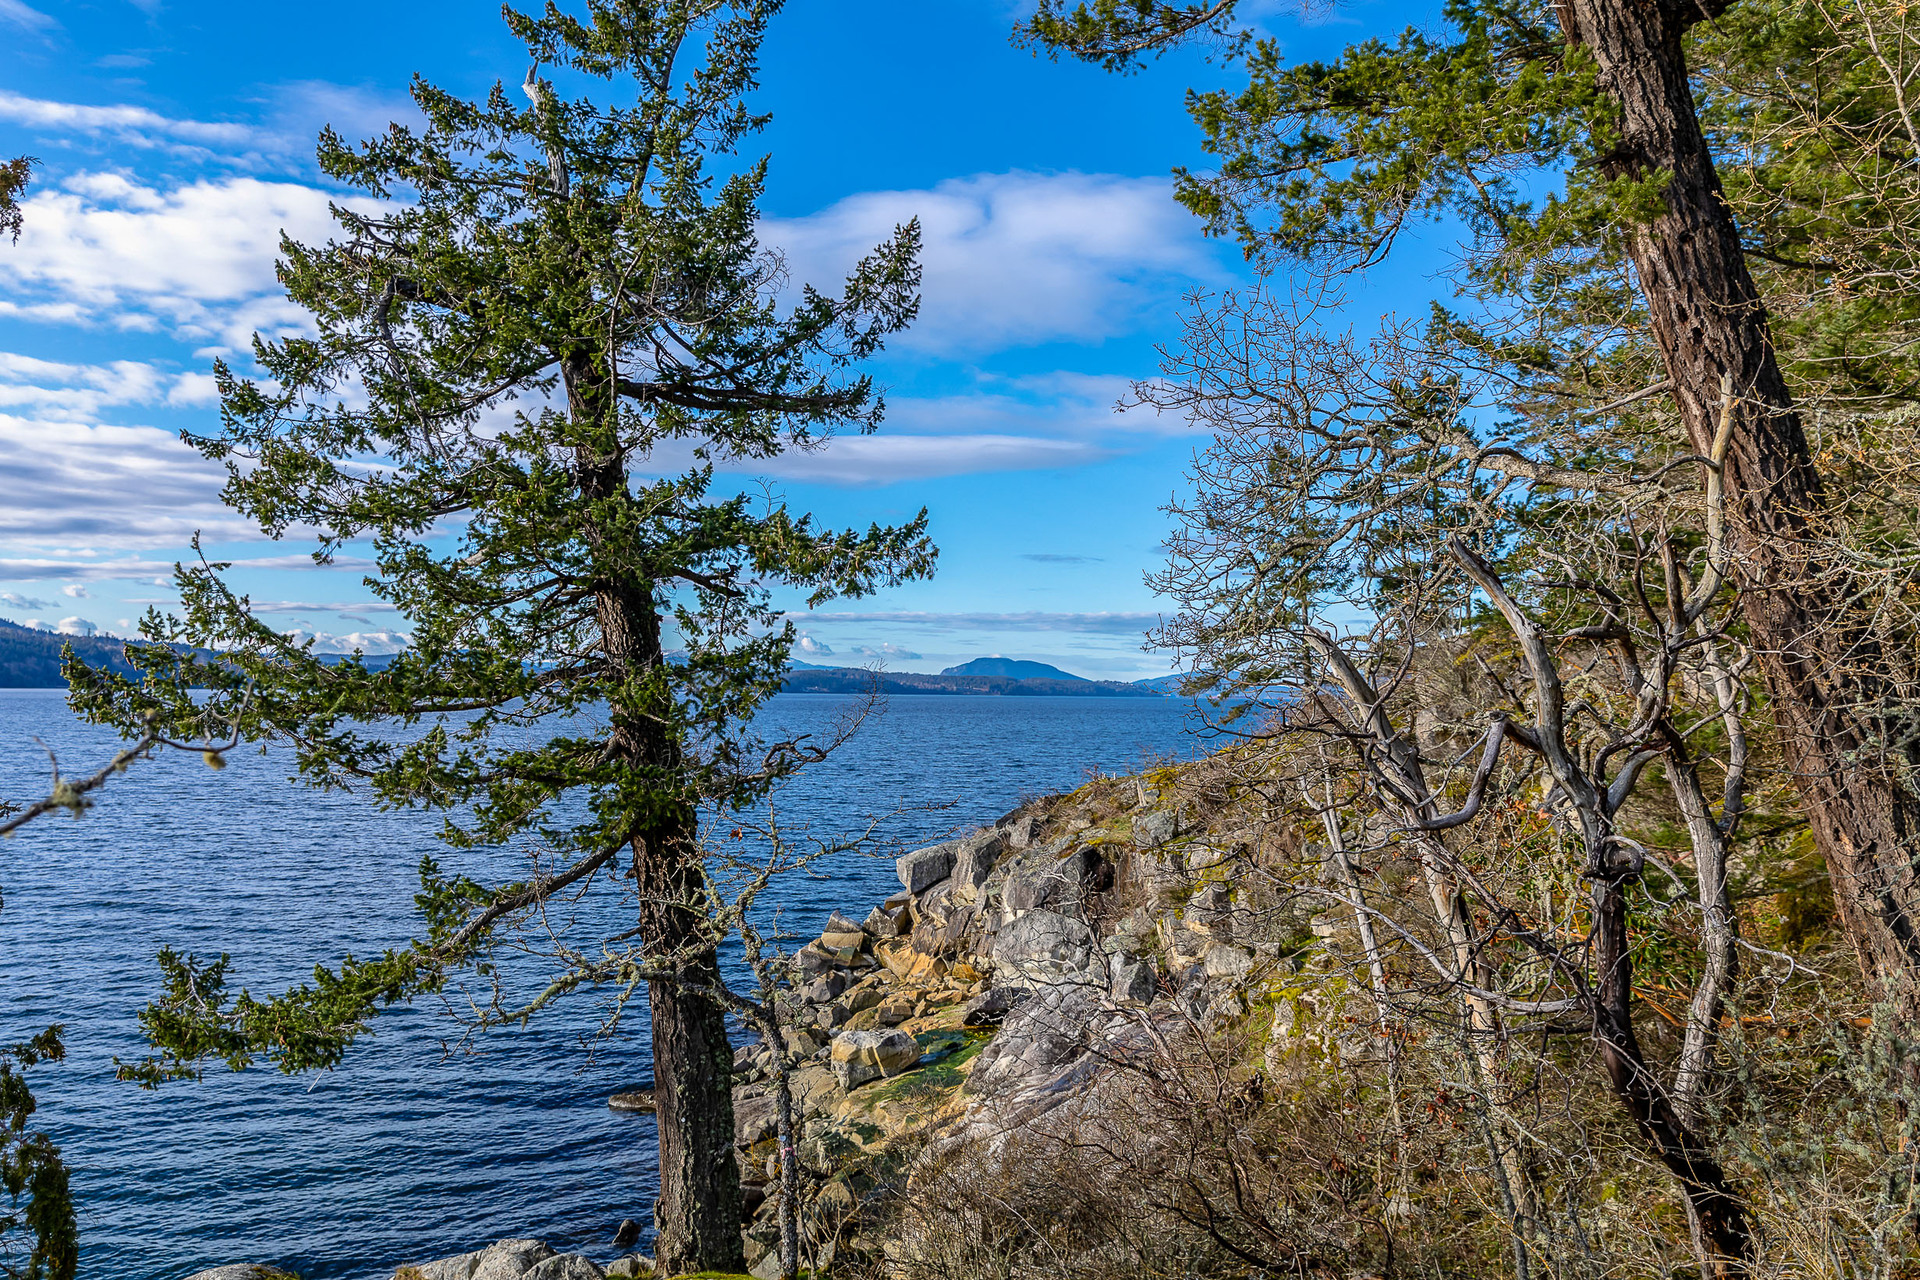 Perched on the Finlayson Arm at 8100 Mcphail Road, Inlet, Central Saanich